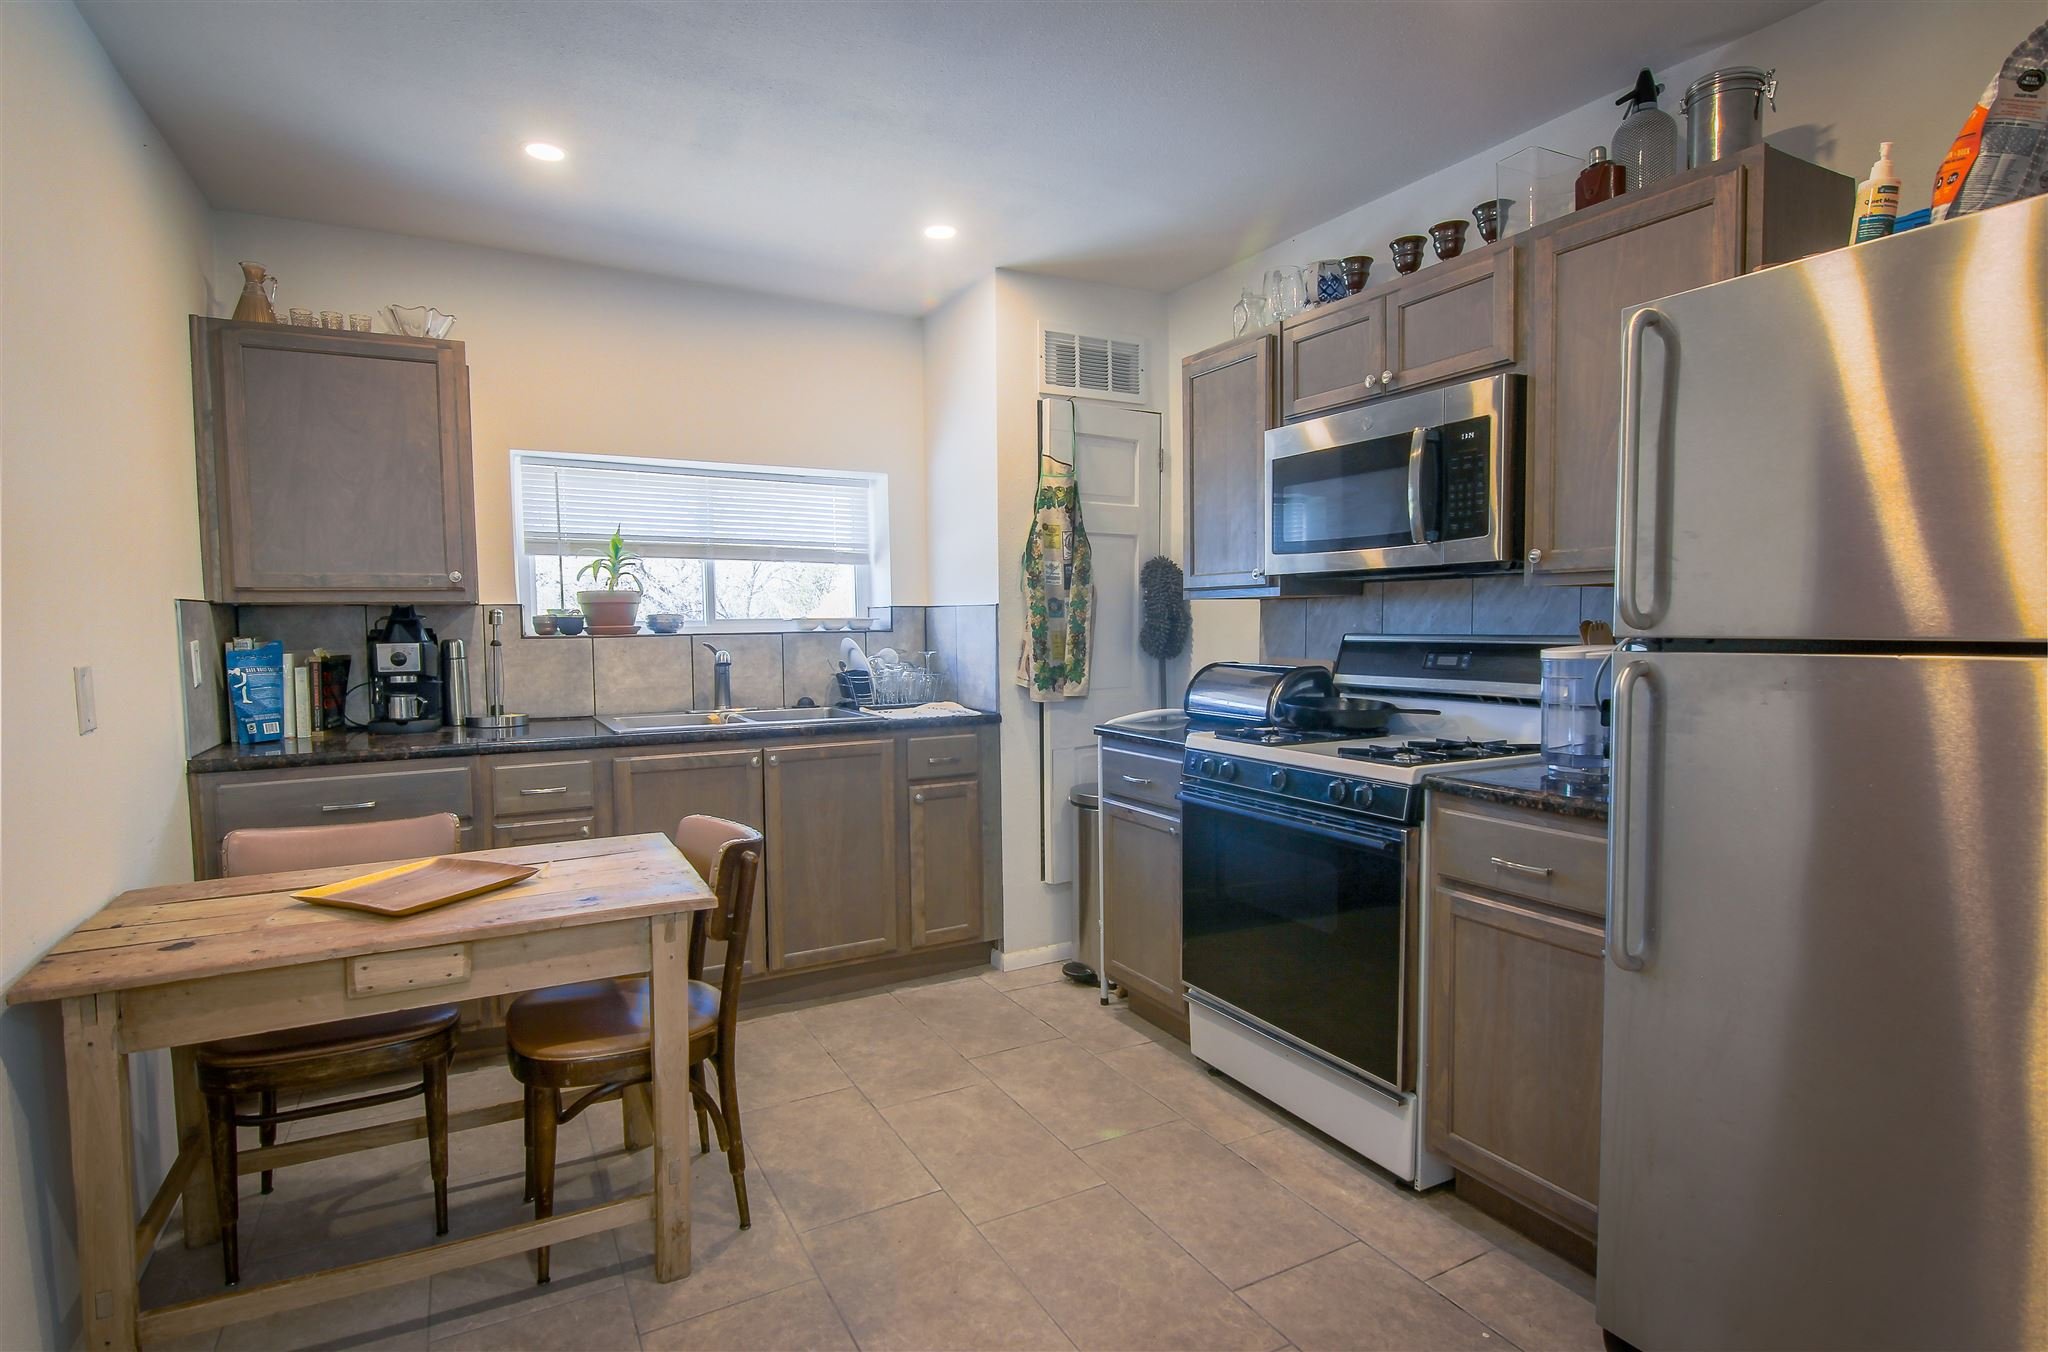 A tremendous opportunity for an investor or buyer in a prime location. Just a short walk to the plaza, restaurants, and shops. Recently upgraded home with large open lot. A must see! R21 zoning; many possibilities. The house has had updates and in good condition.